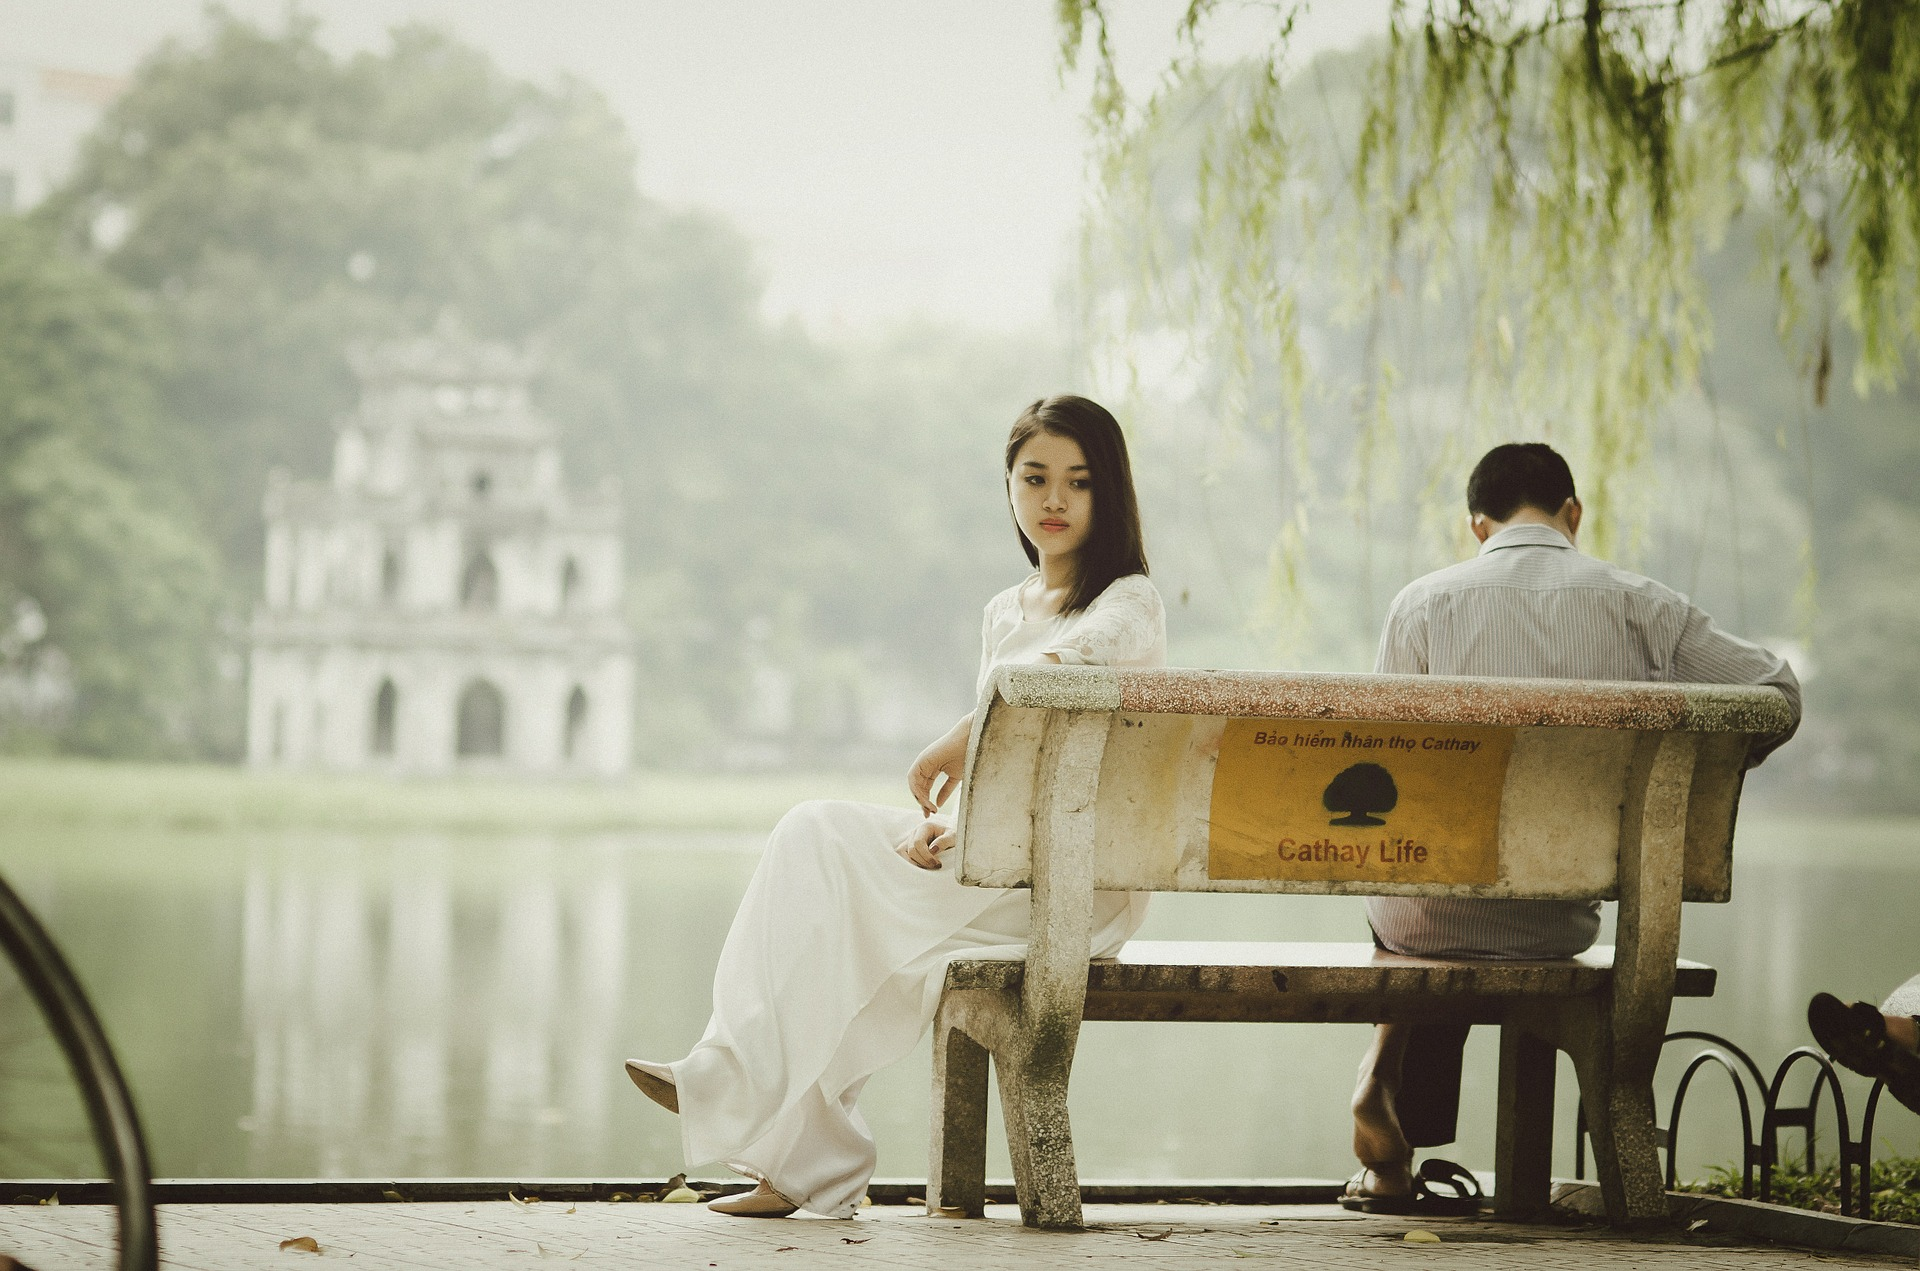 incompatibility in marriage can wreck your marital happiness. Understand that you are in the same team and so should work together to make your marriage a success